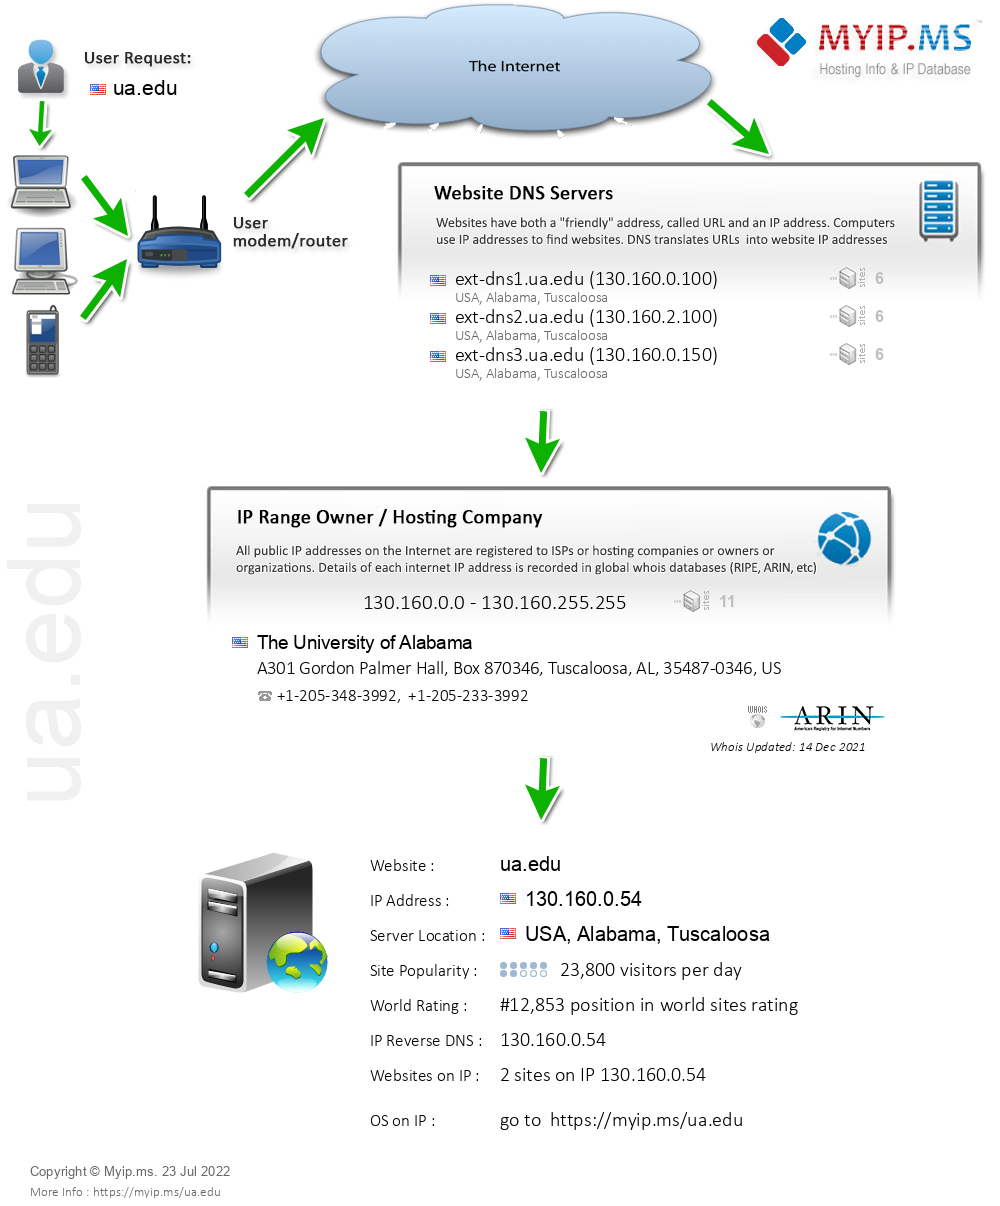 Ua.edu - Website Hosting Visual IP Diagram